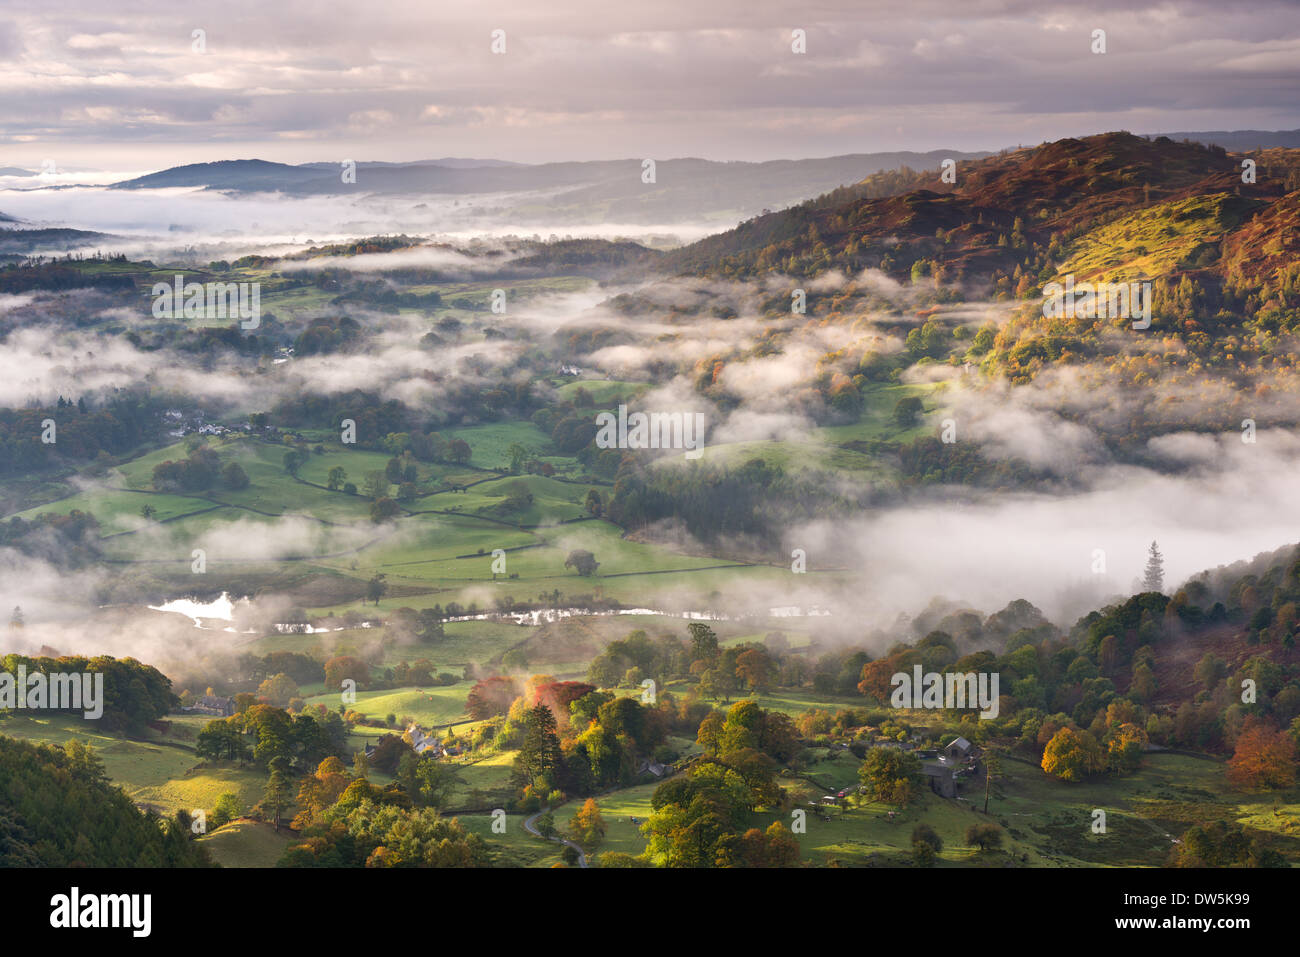 Patches der Morgennebel schweben über der Landschaft in der Nähe der Fluß Brathay, Nationalpark Lake District, Cumbria, England. Stockbild